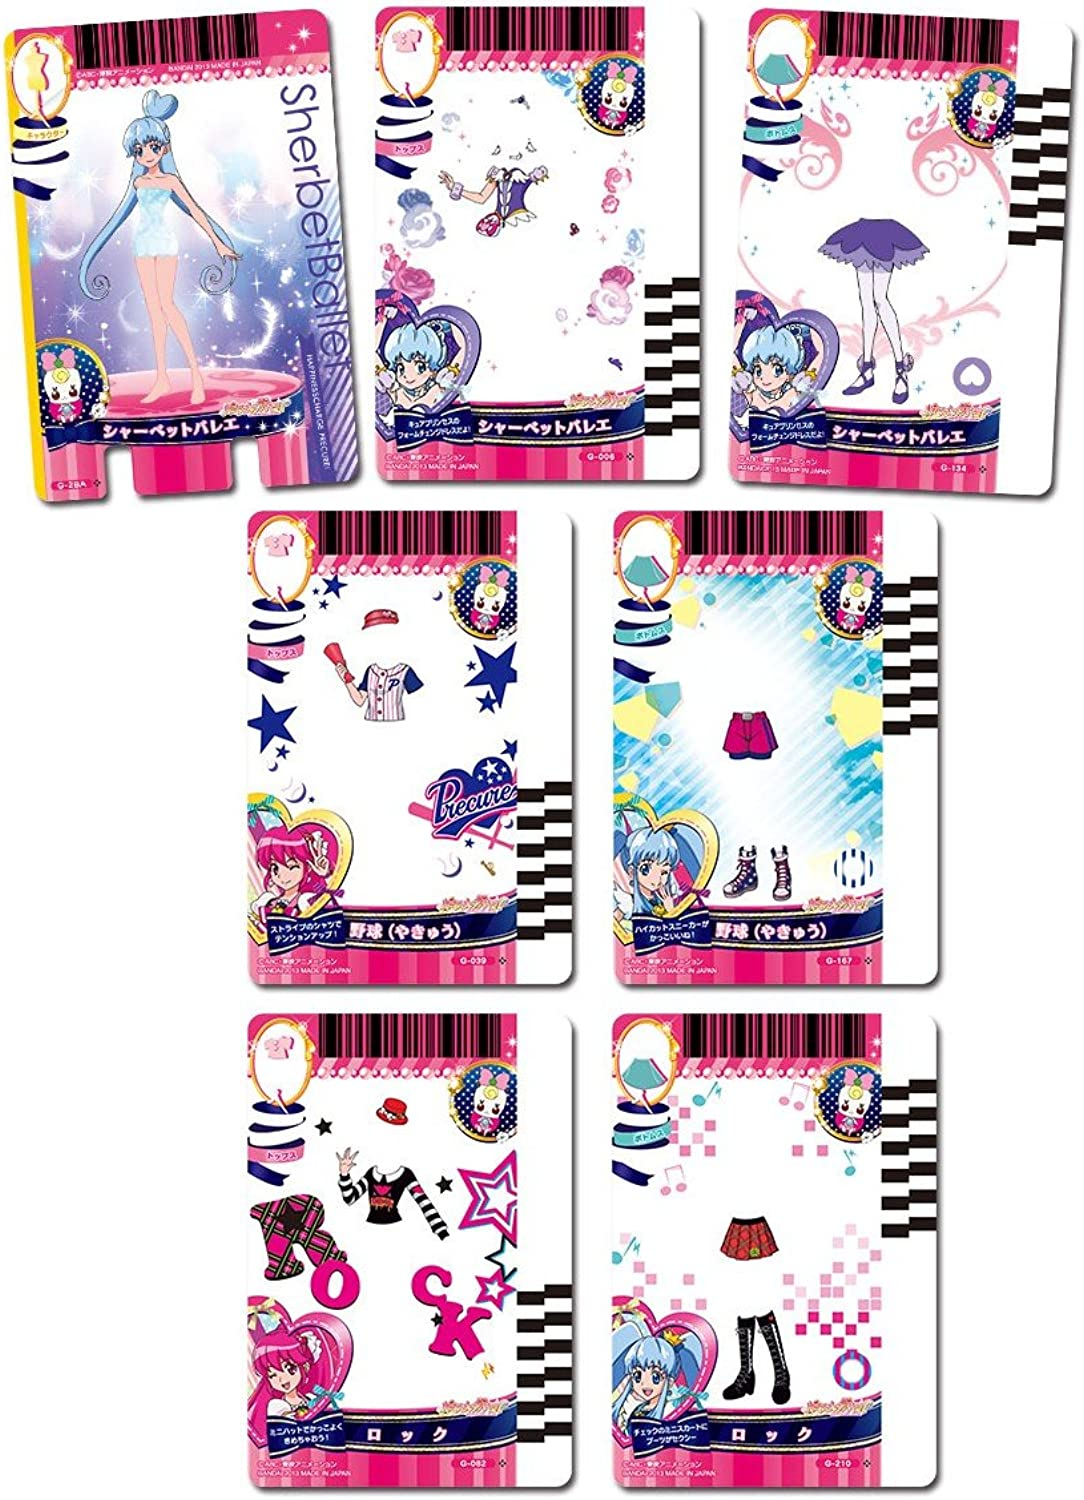 Happiness charge Pretty Cure  Pre Card Collection 2 sherbet ballet